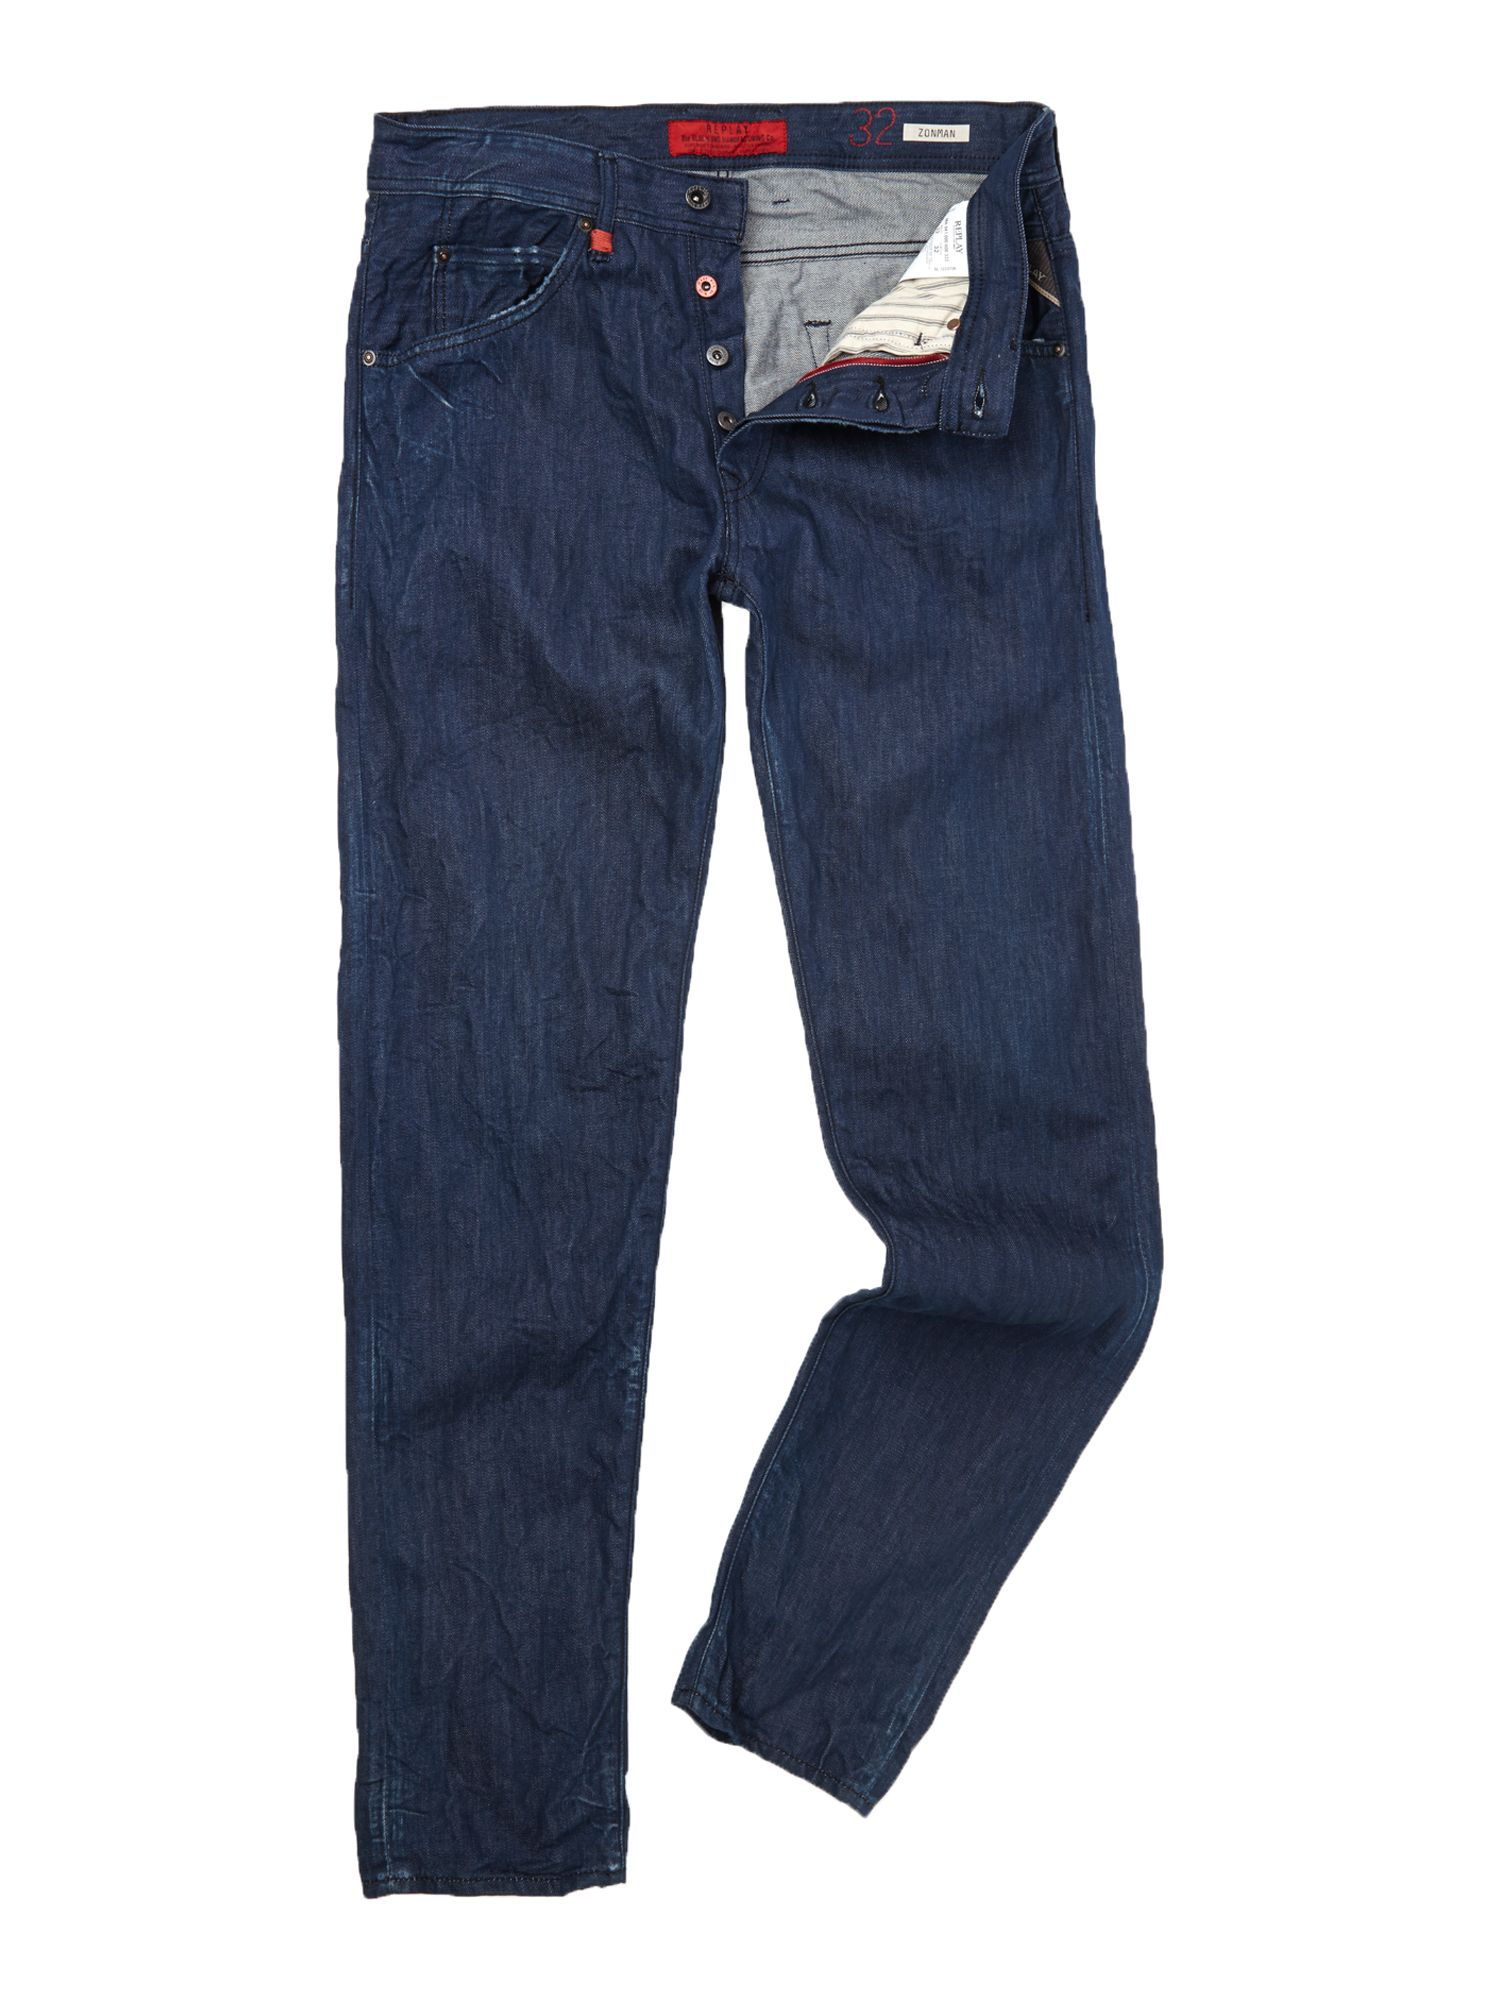 Zonman carrot fit denim jeans